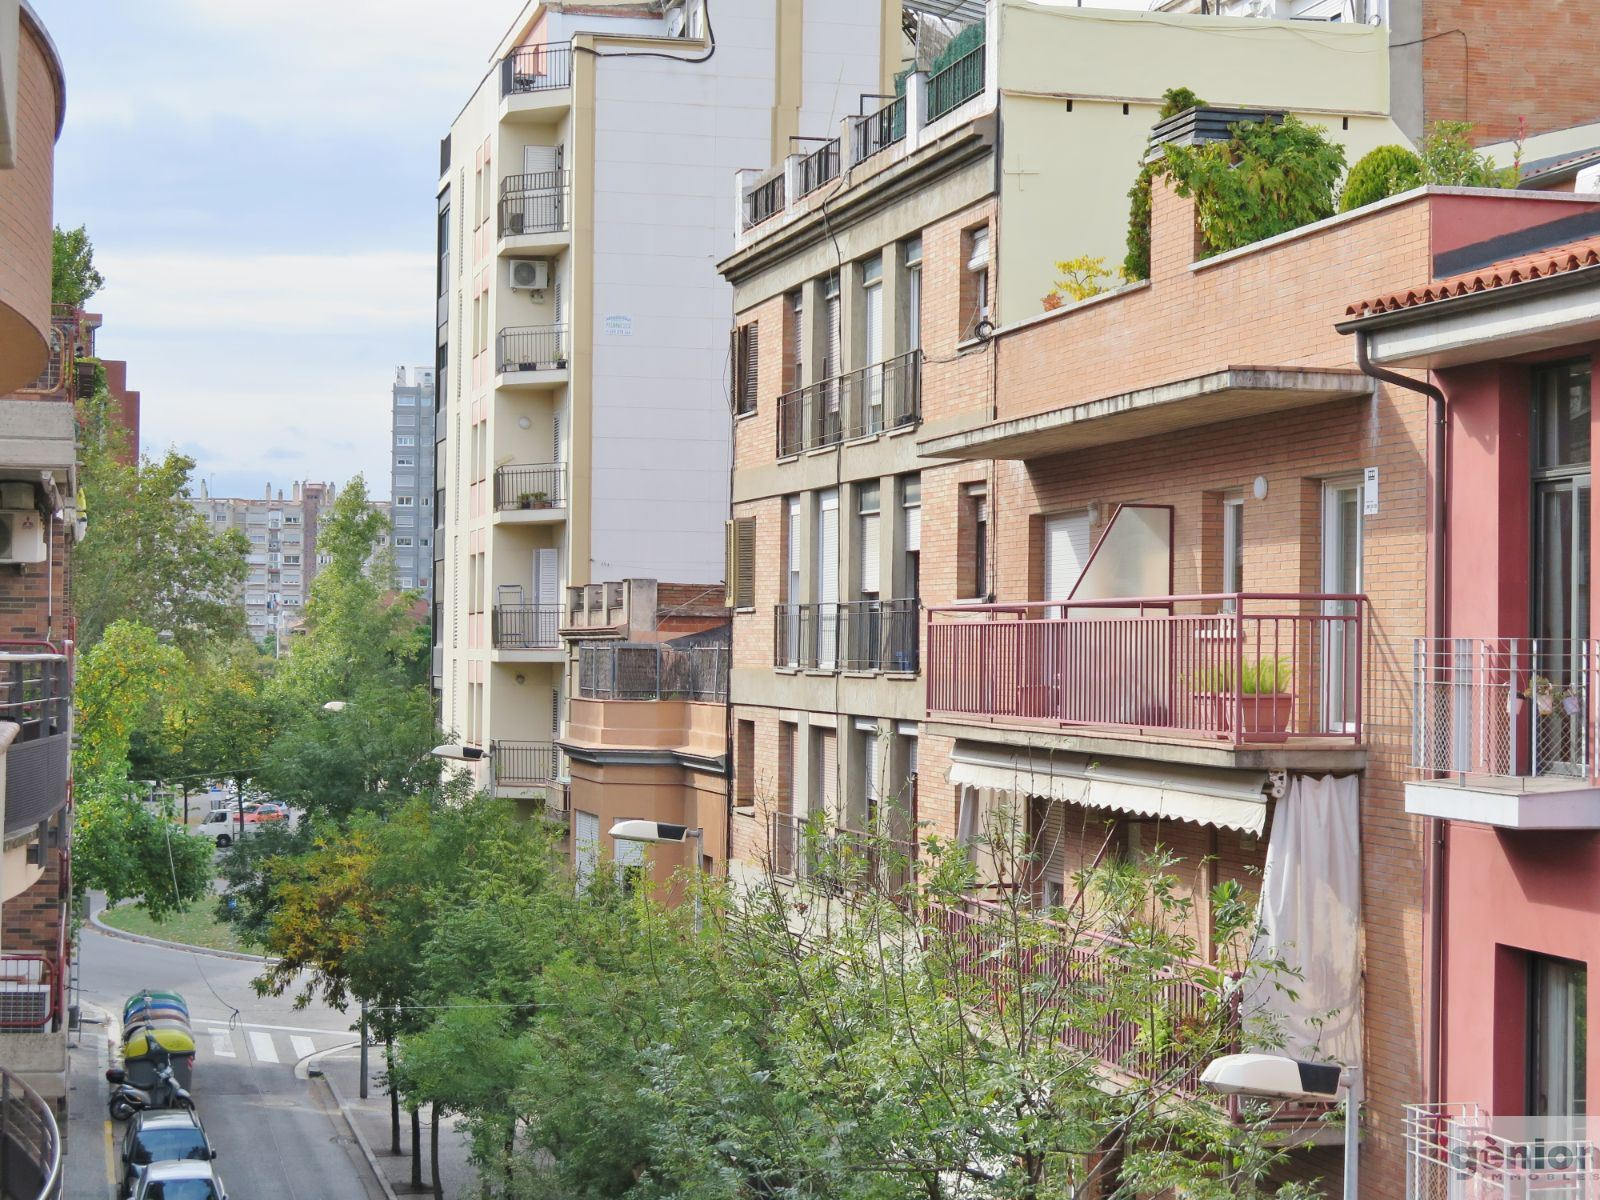 TOP-FLOOR 2-STOREY APARTMENT IN GIRONA CITY CENTRE. 3 BEDROOMS AND OPTIONAL PARKING SPACE